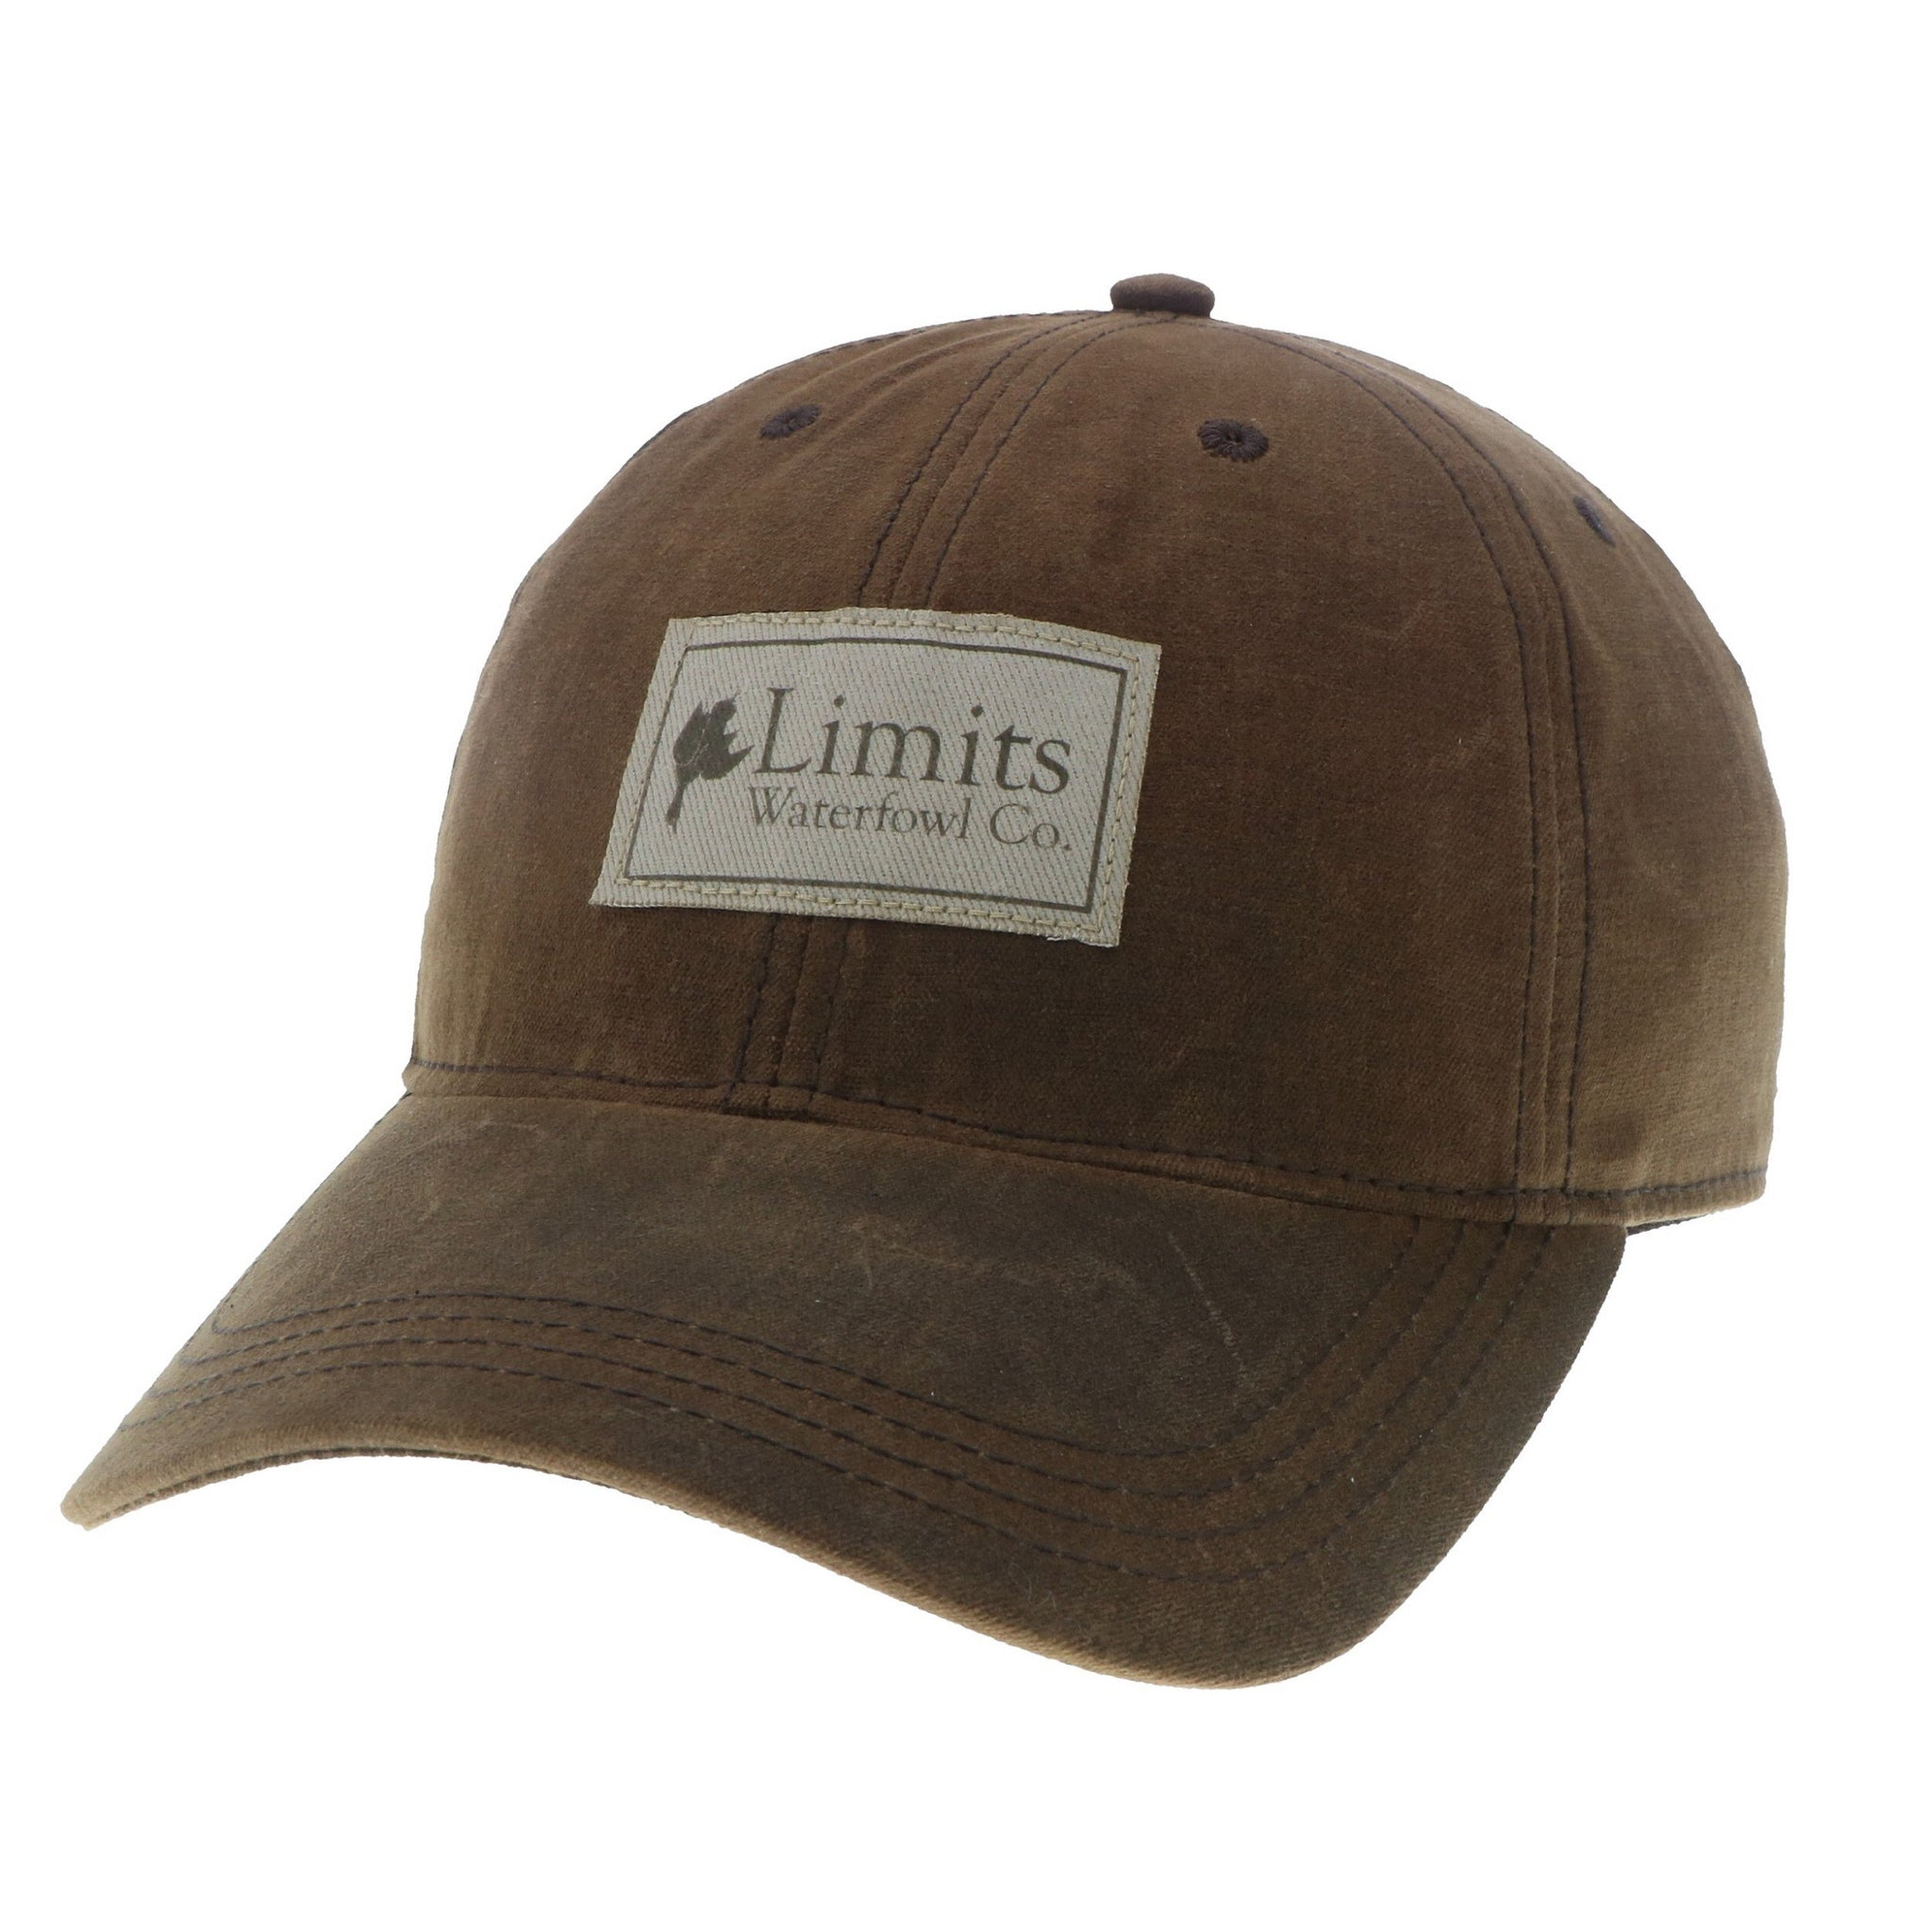 Brown Waxed Cotton-hat-Limits Waterfowl Co.-Limits Waterfowl Co. ab8ebc3aa5e